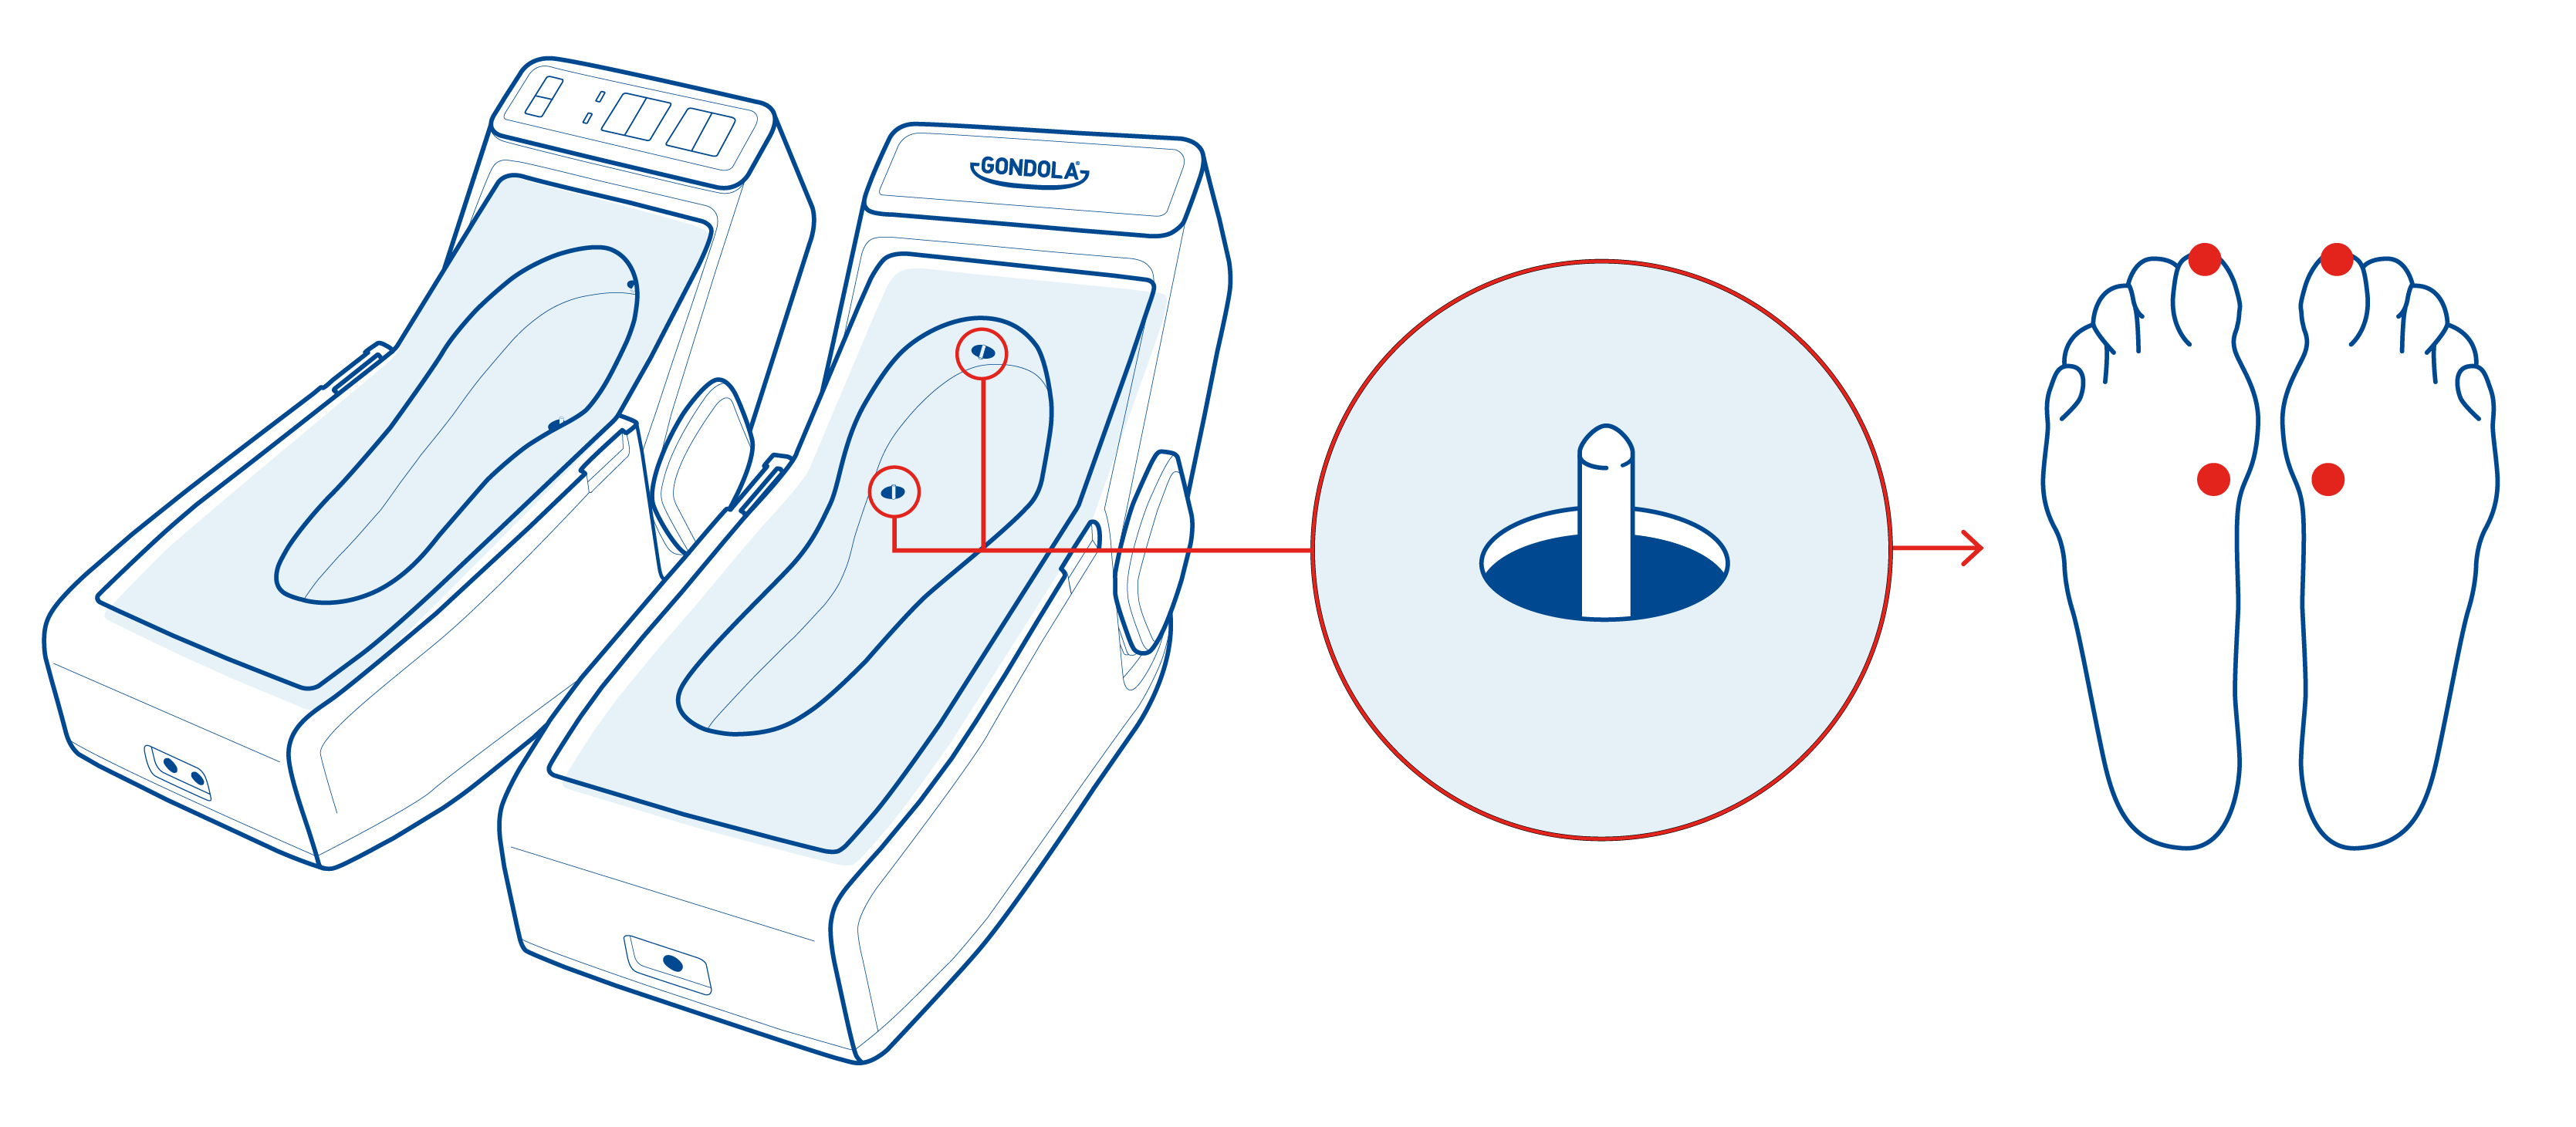 Gondola Therapeutic Device and how it works